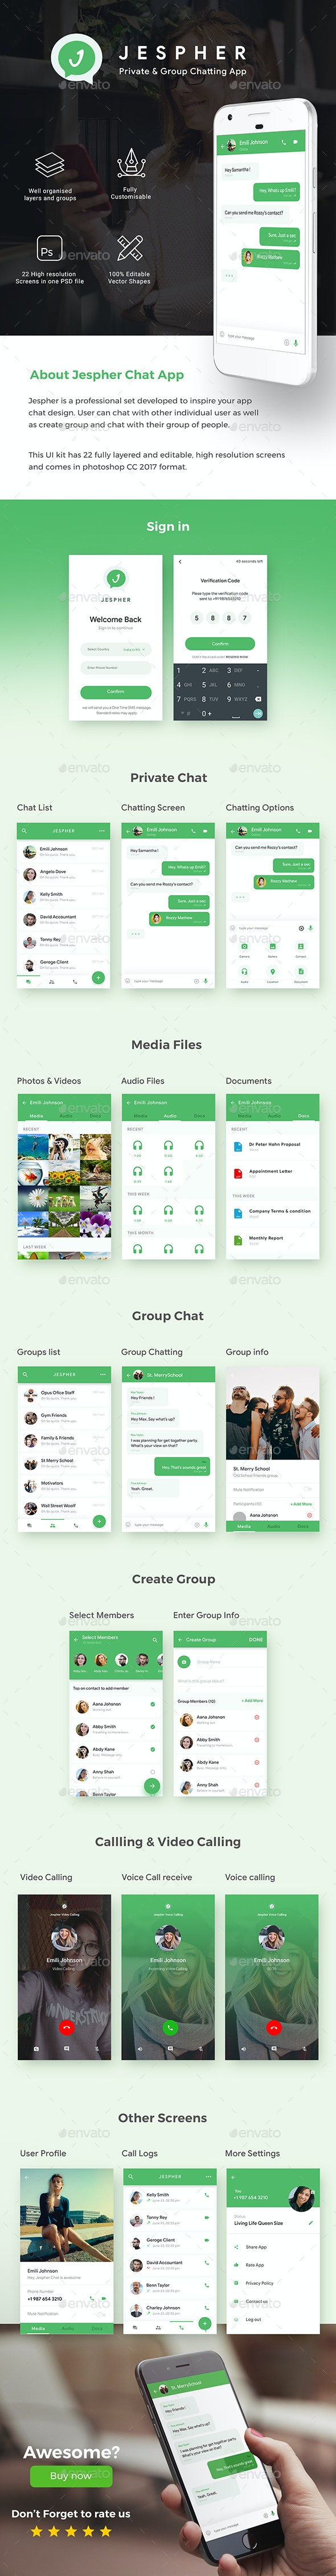 Chatting & Group Chatting App UI Kit  |  Jespher Chats - User Interfaces Web Elements